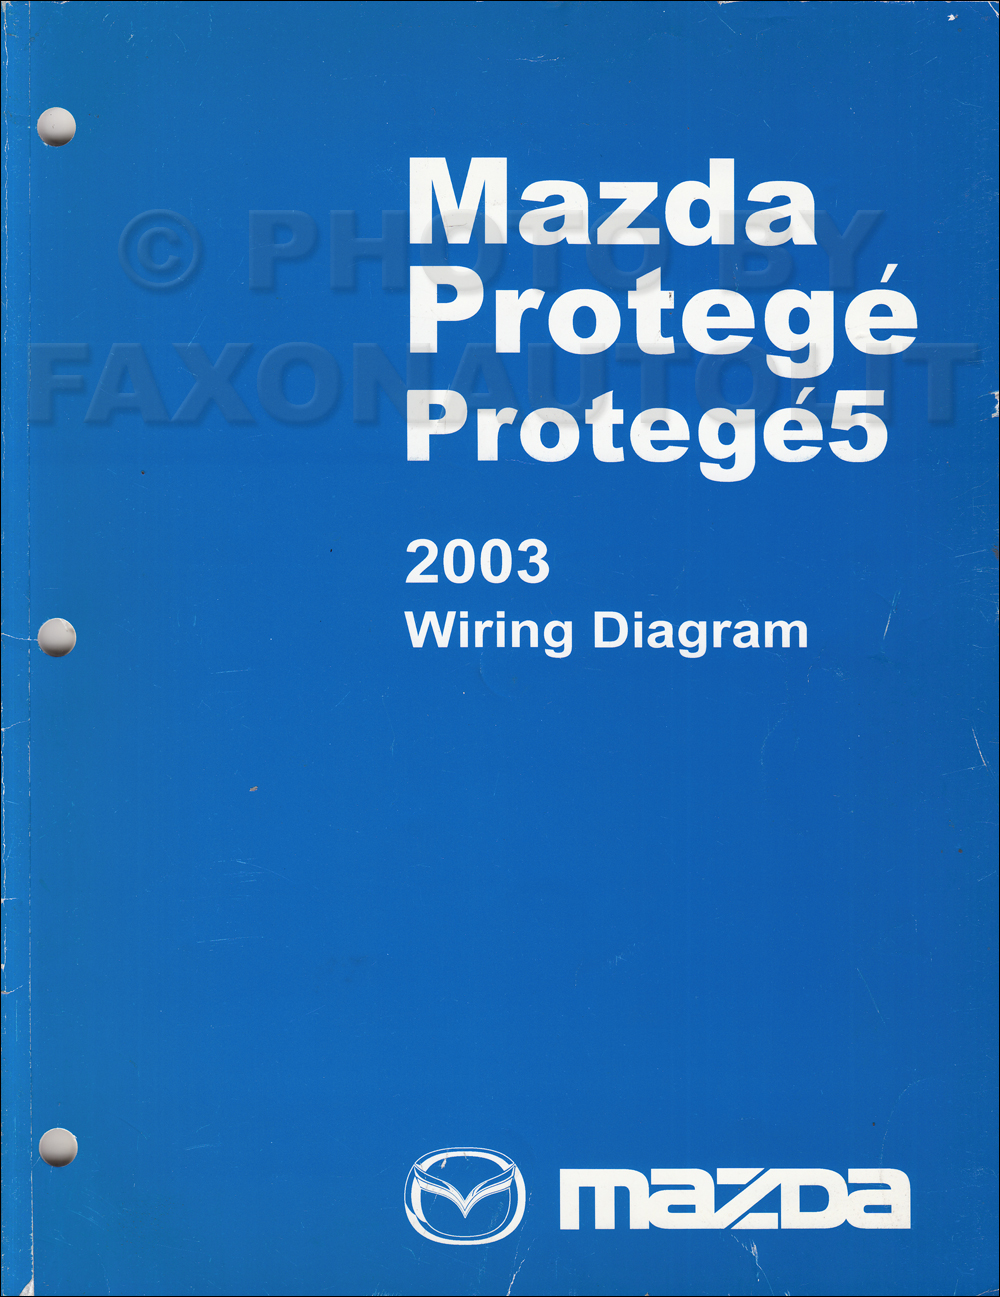 2003 mazda protege and protege5 wiring diagram manual original rh faxonautoliterature com 2003 mazda protege radio wiring diagram 2003 mazda protege5 headlight wiring diagram